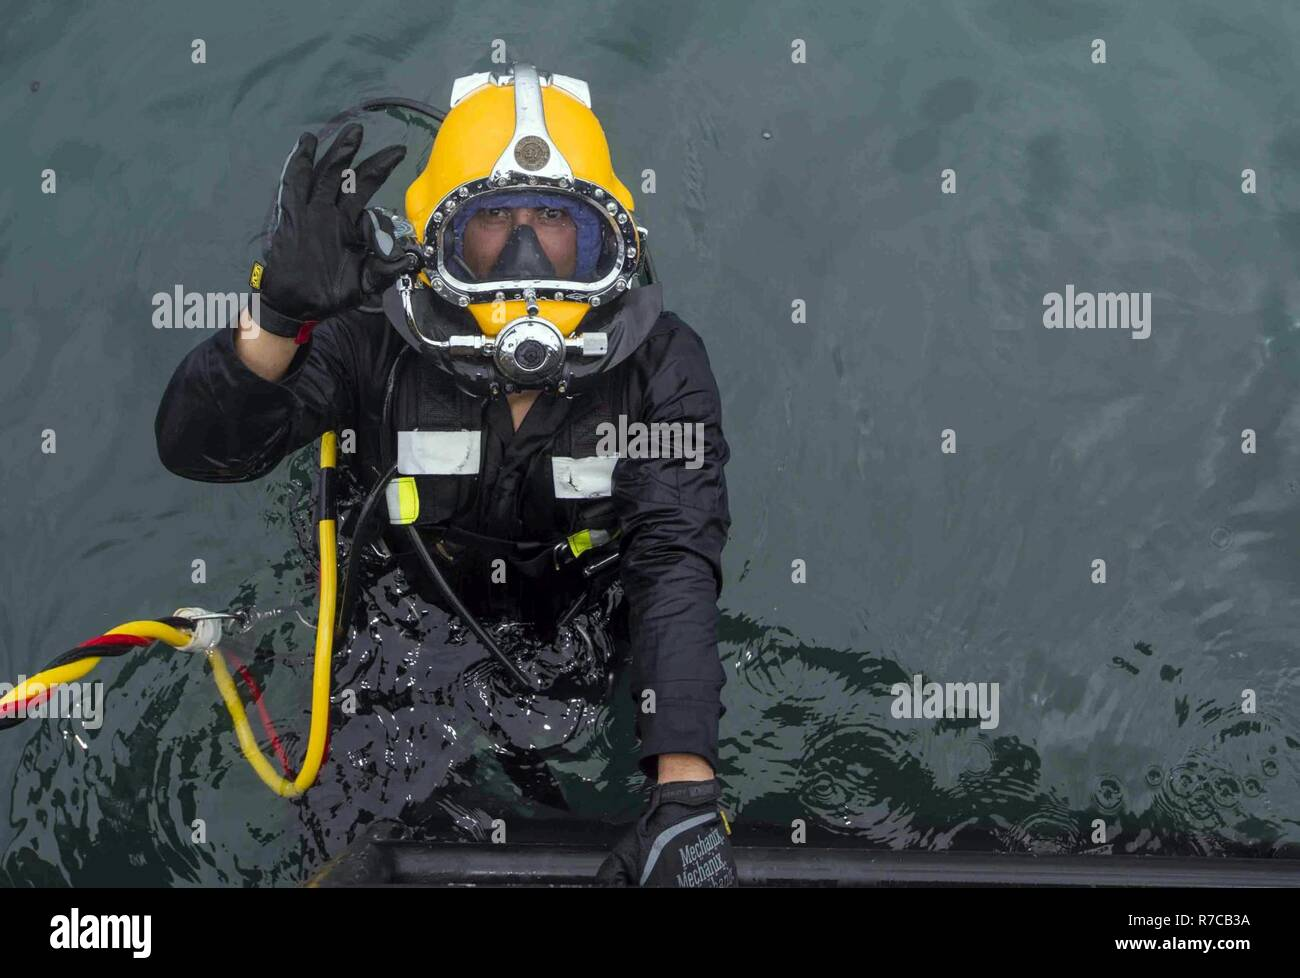 U.S. Navy Equipment Operator 3rd Class Thomas Dahlke, Underwater Construction Team 2, enters the water during an underwater surface-supply dive in support of Balikatan 2017 at Ipil Port in Ormoc City, Leyte, May 12, 2017. The surface-supply dive training prepares Philippine and U.S. service members to clear debris in ports and open up supply lines for victims of natural disasters and crises. Stock Photo